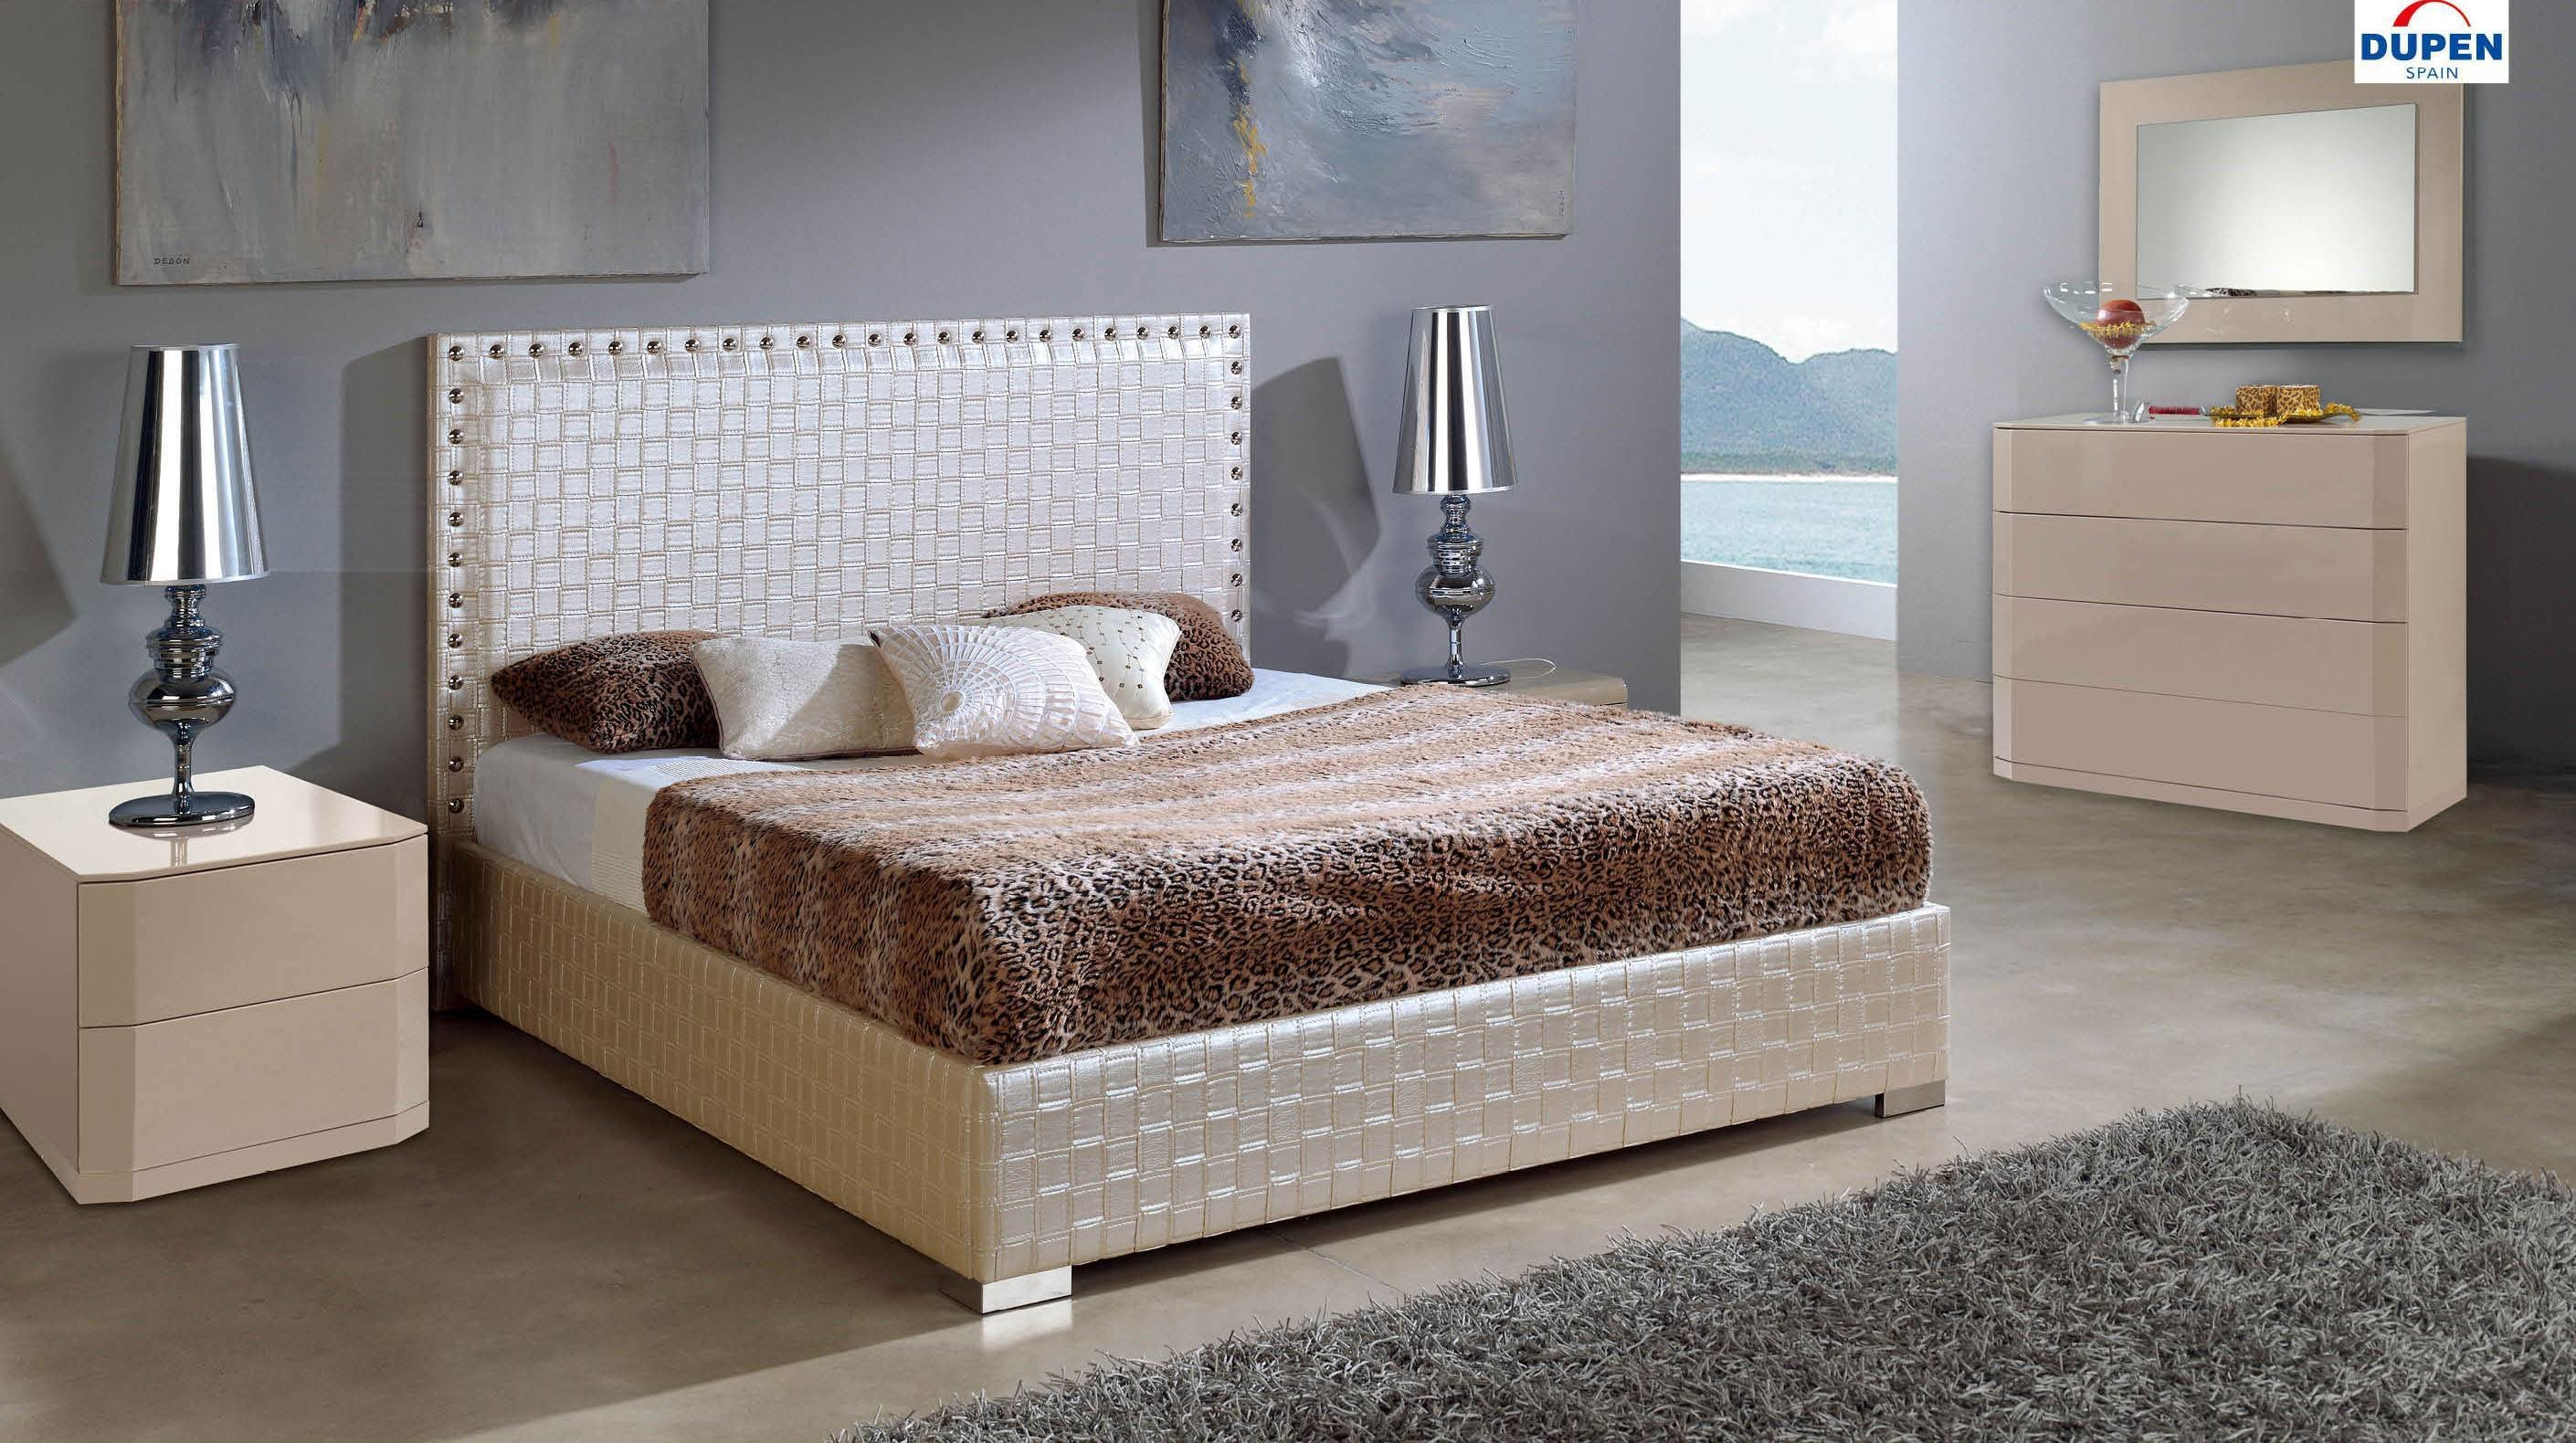 Best Made In Spain Leather Contemporary Platform Bedroom Sets With Extra Storage San Francisco With Pictures